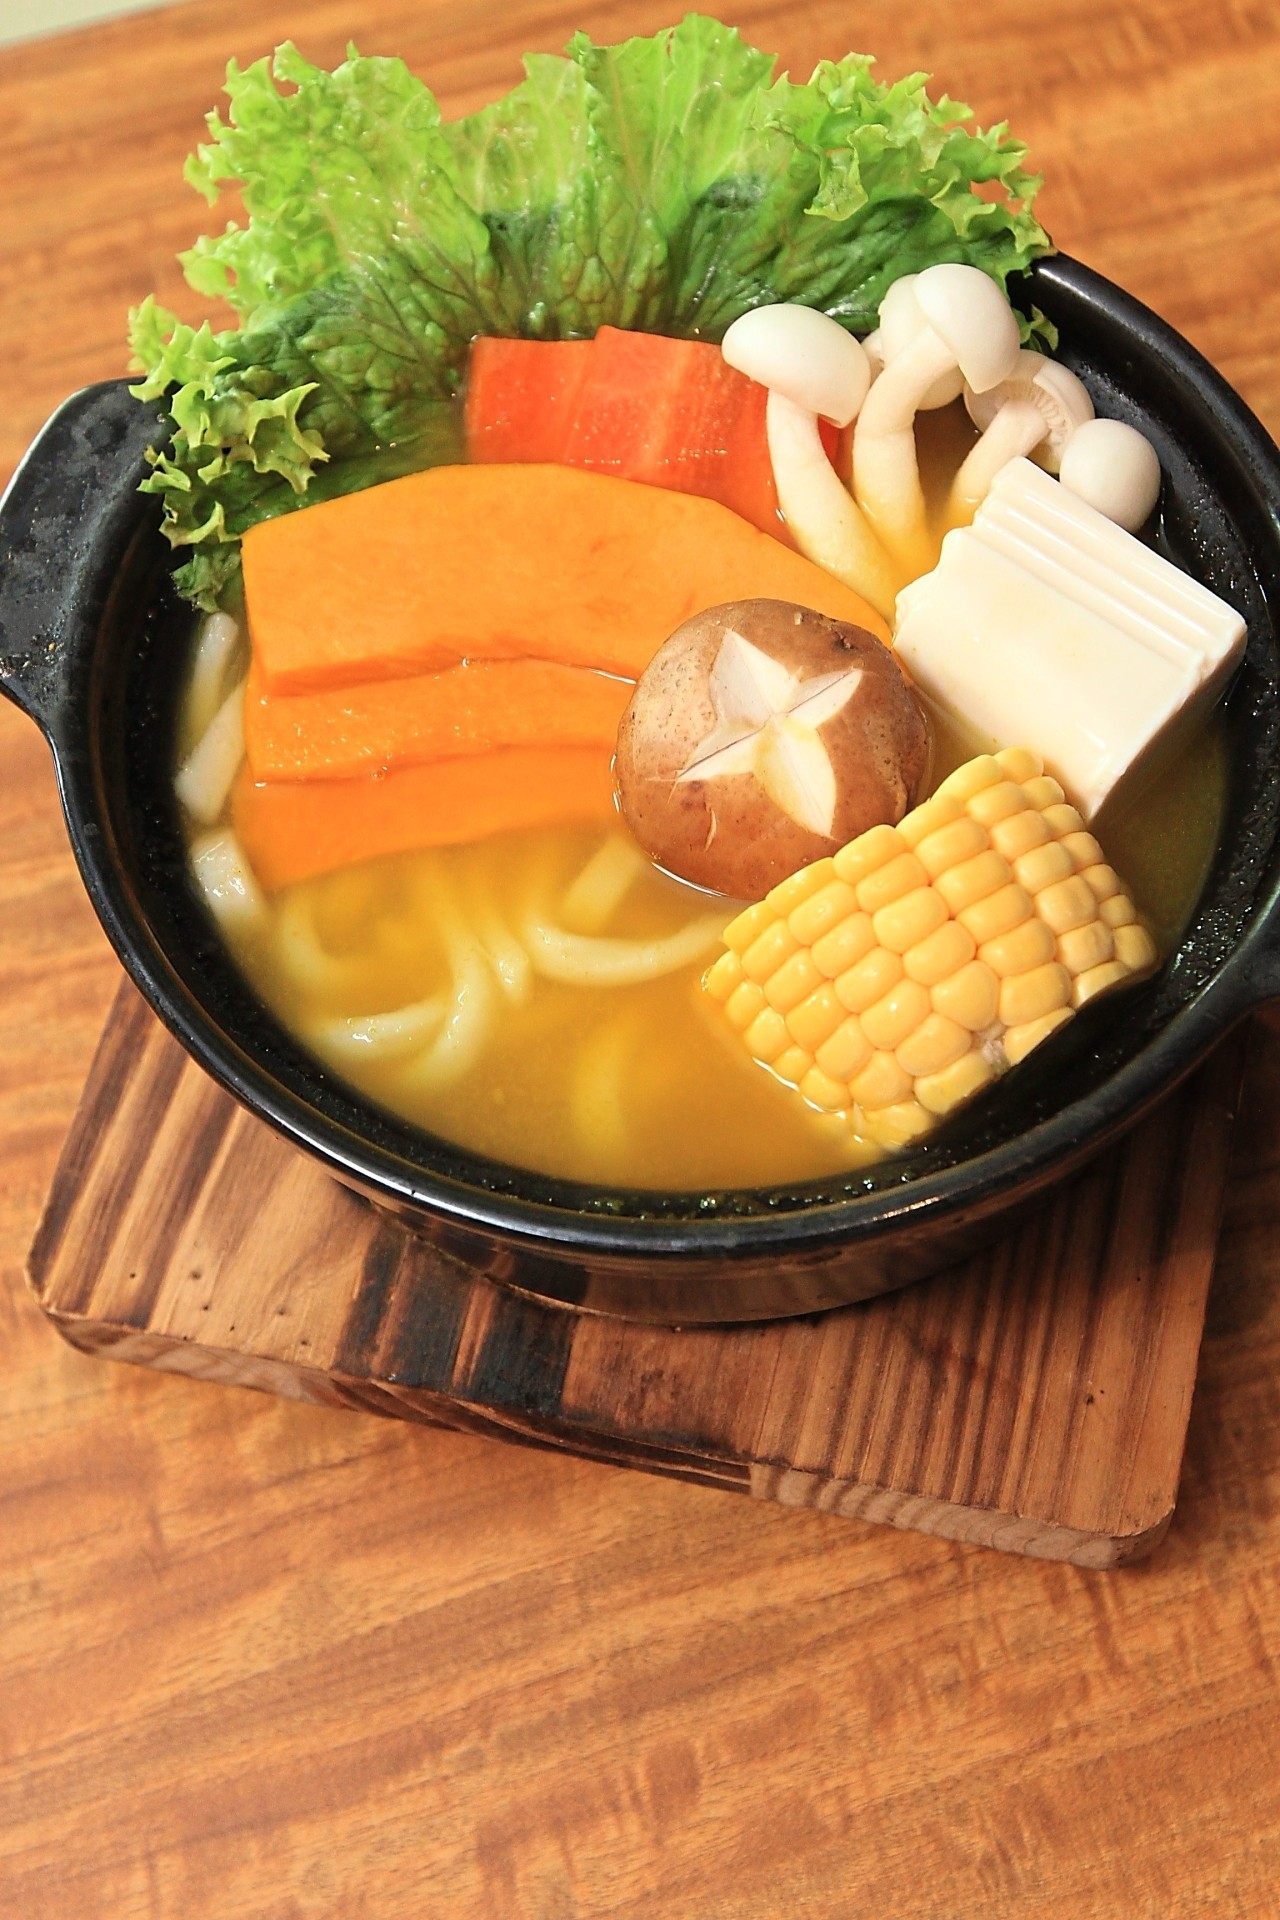 Healthy Pumpkin Udon from the set lunch and dinner menu. The udon can be replaced with ramen, soba or rice.